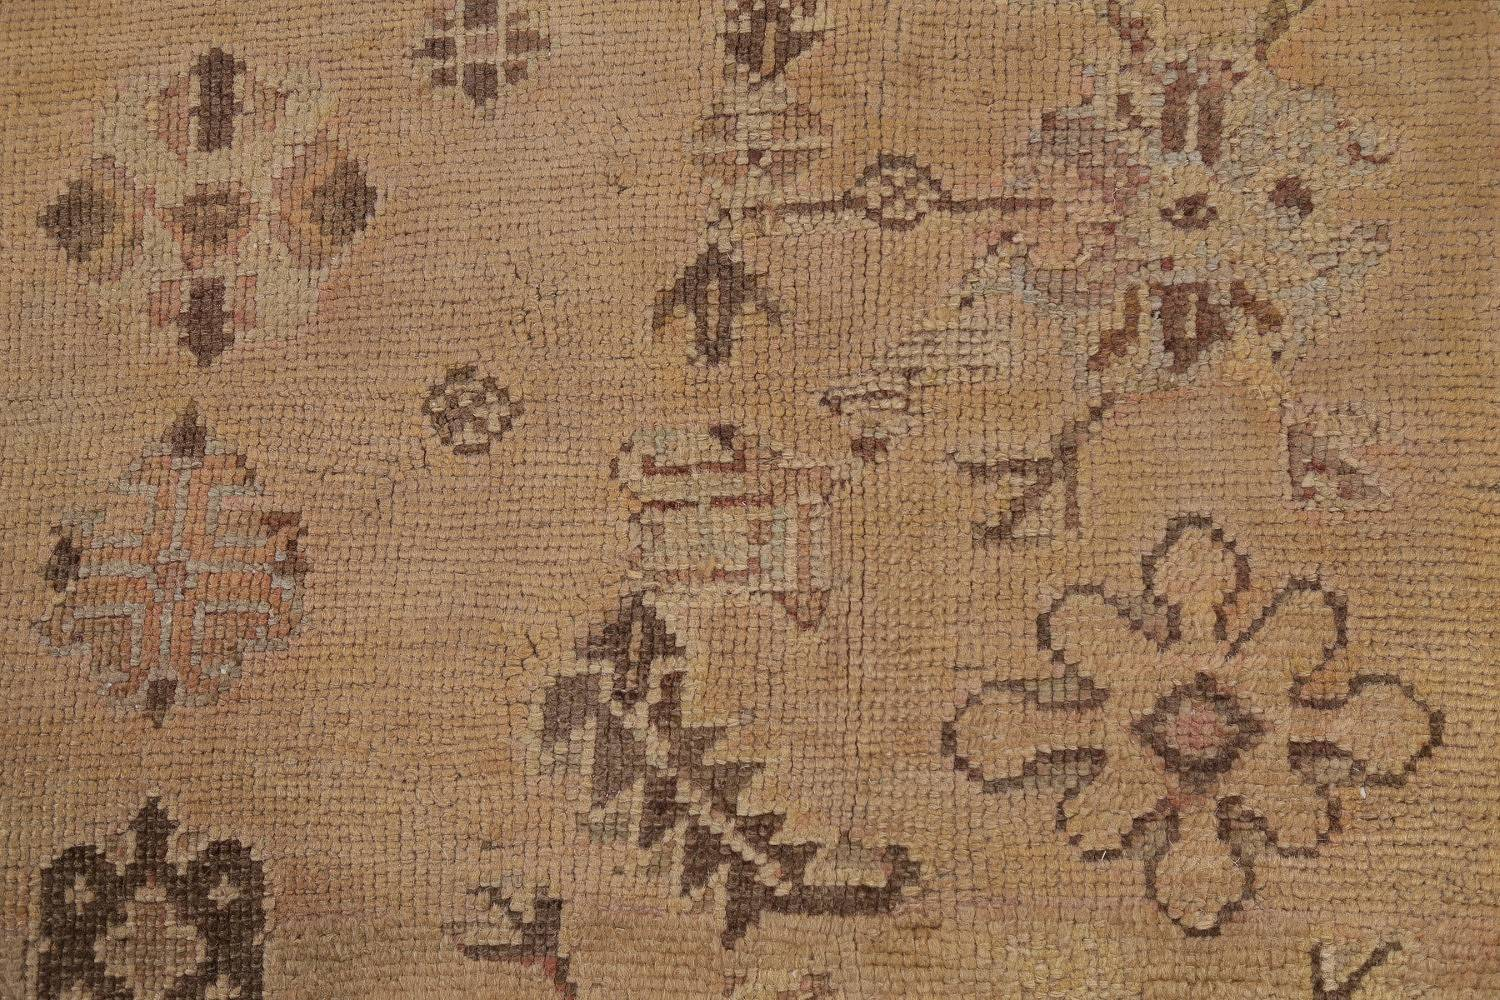 Pre-1900 Antique All-Over Geometric Muted Color Oushak Turkish Area Rug 10x13 image 10